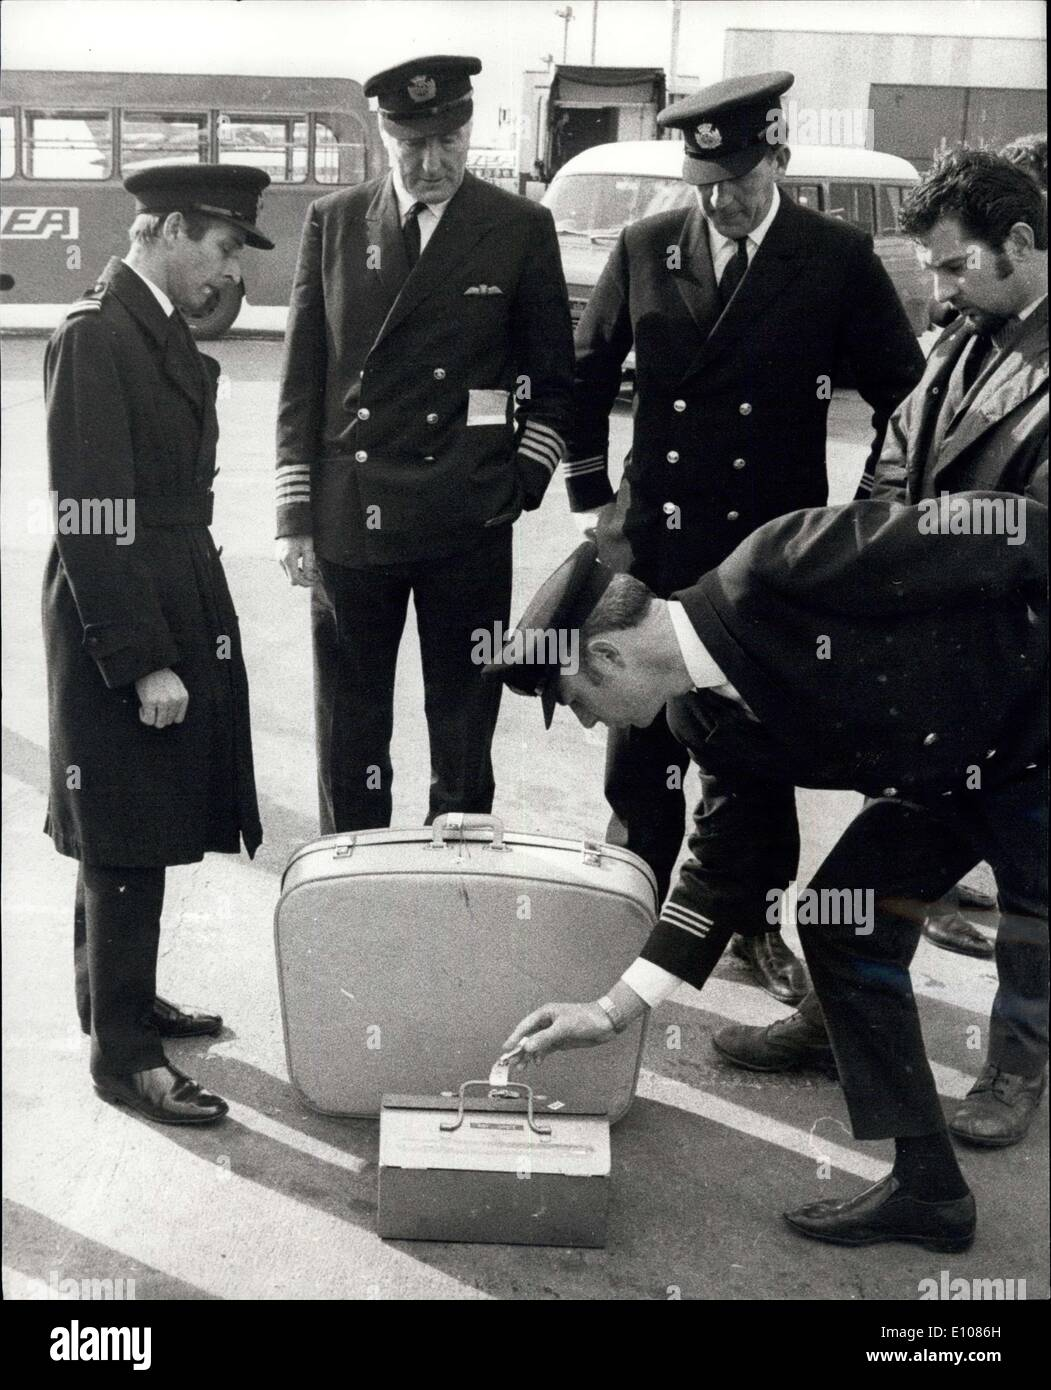 Feb. 25, 1970 - Luggage identified by passengers before going abroad airliner.: baggage was identified by passengers at Heathrow yesterday before being taken aboard a BEA Trident bound for Athens and Tel Aviv. The luggage had been off-loaded from another Trident when the pilot, Captain James Bell, decided not to take off because the Earl and Countess of Gainsborough had refused to fly in the plane. Captain Bell (second from left) is seen watching as unclaimed items were examined. - Stock Image